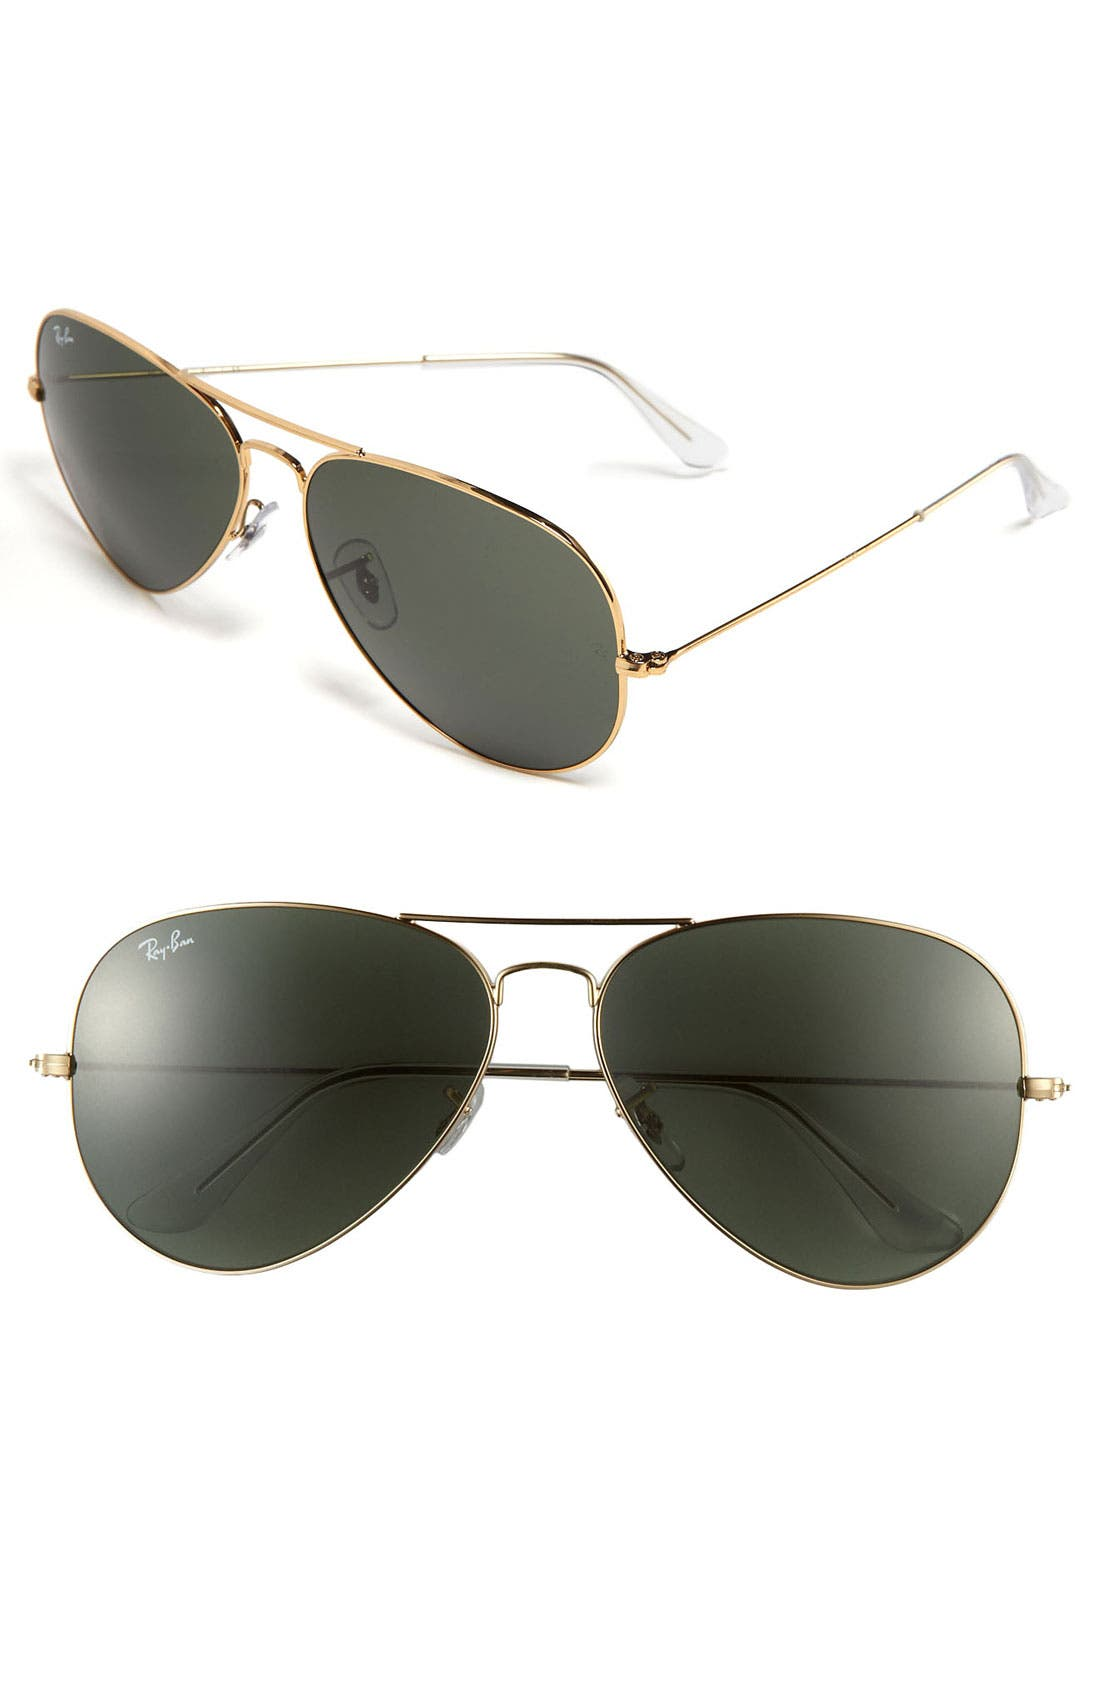 Main Image - Ray-Ban 'Org Aviator' 62mm Sunglasses